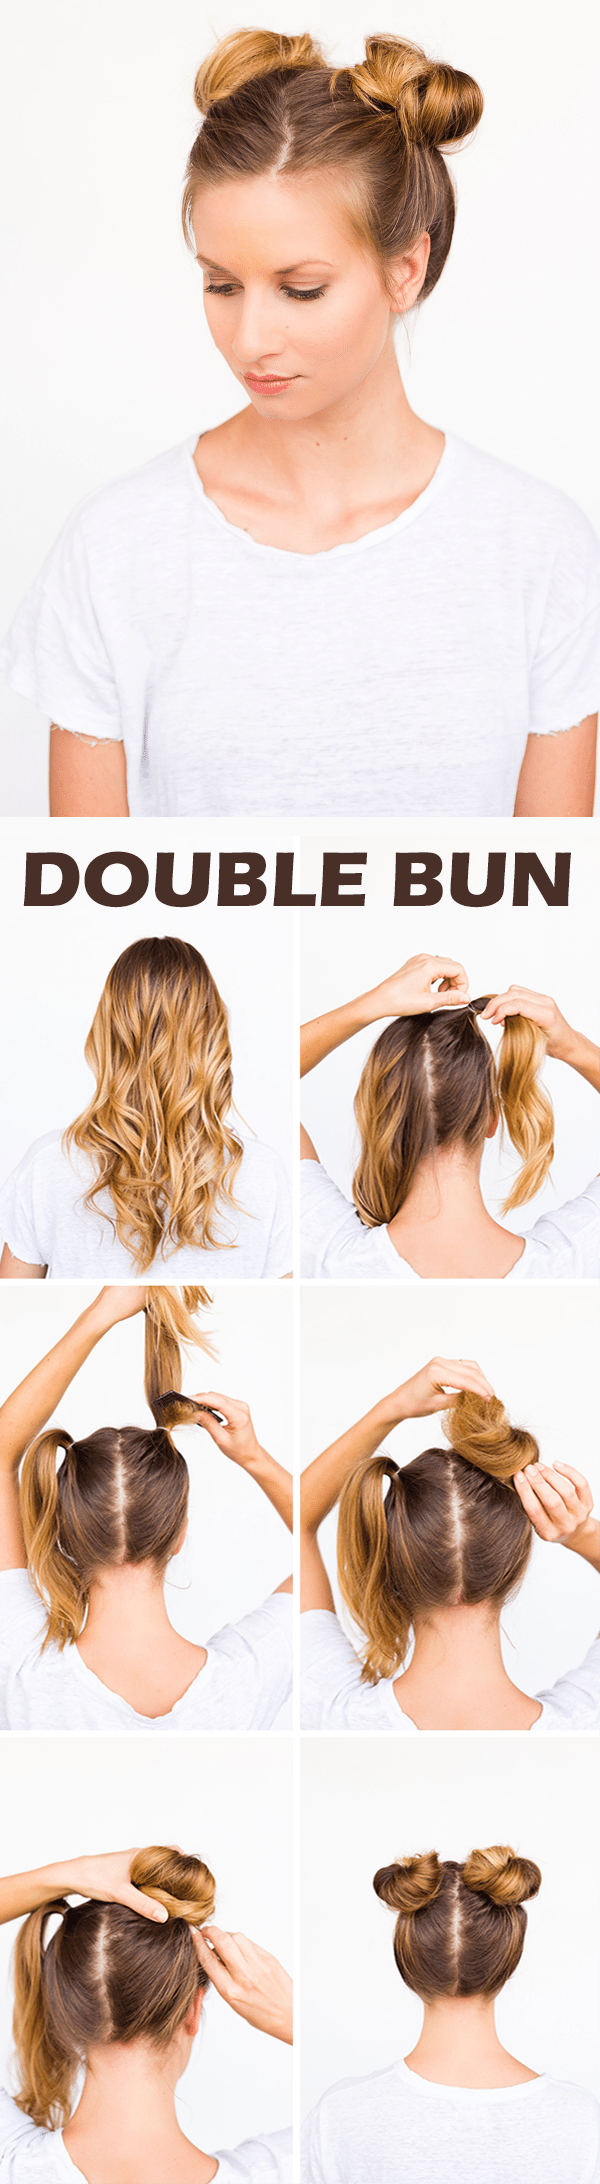 10 Bun Hairstyles For You